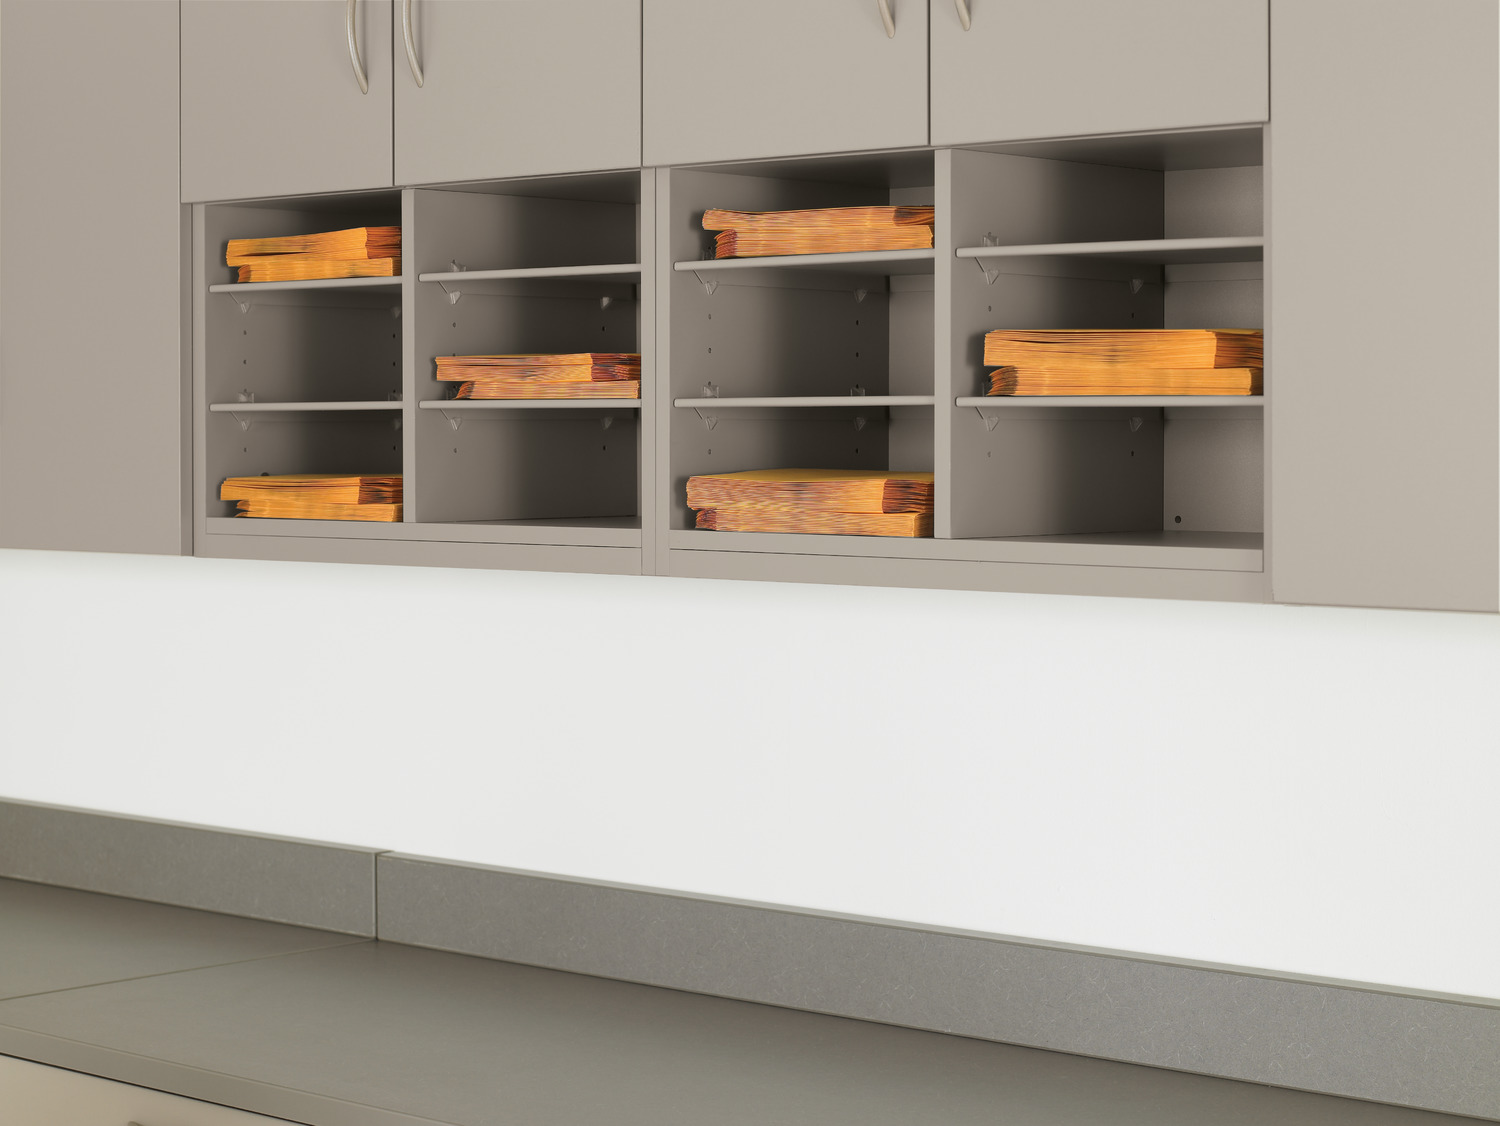 cabinets remodel more ideas check pictures modular kitchen cabinet pin com at entropiads